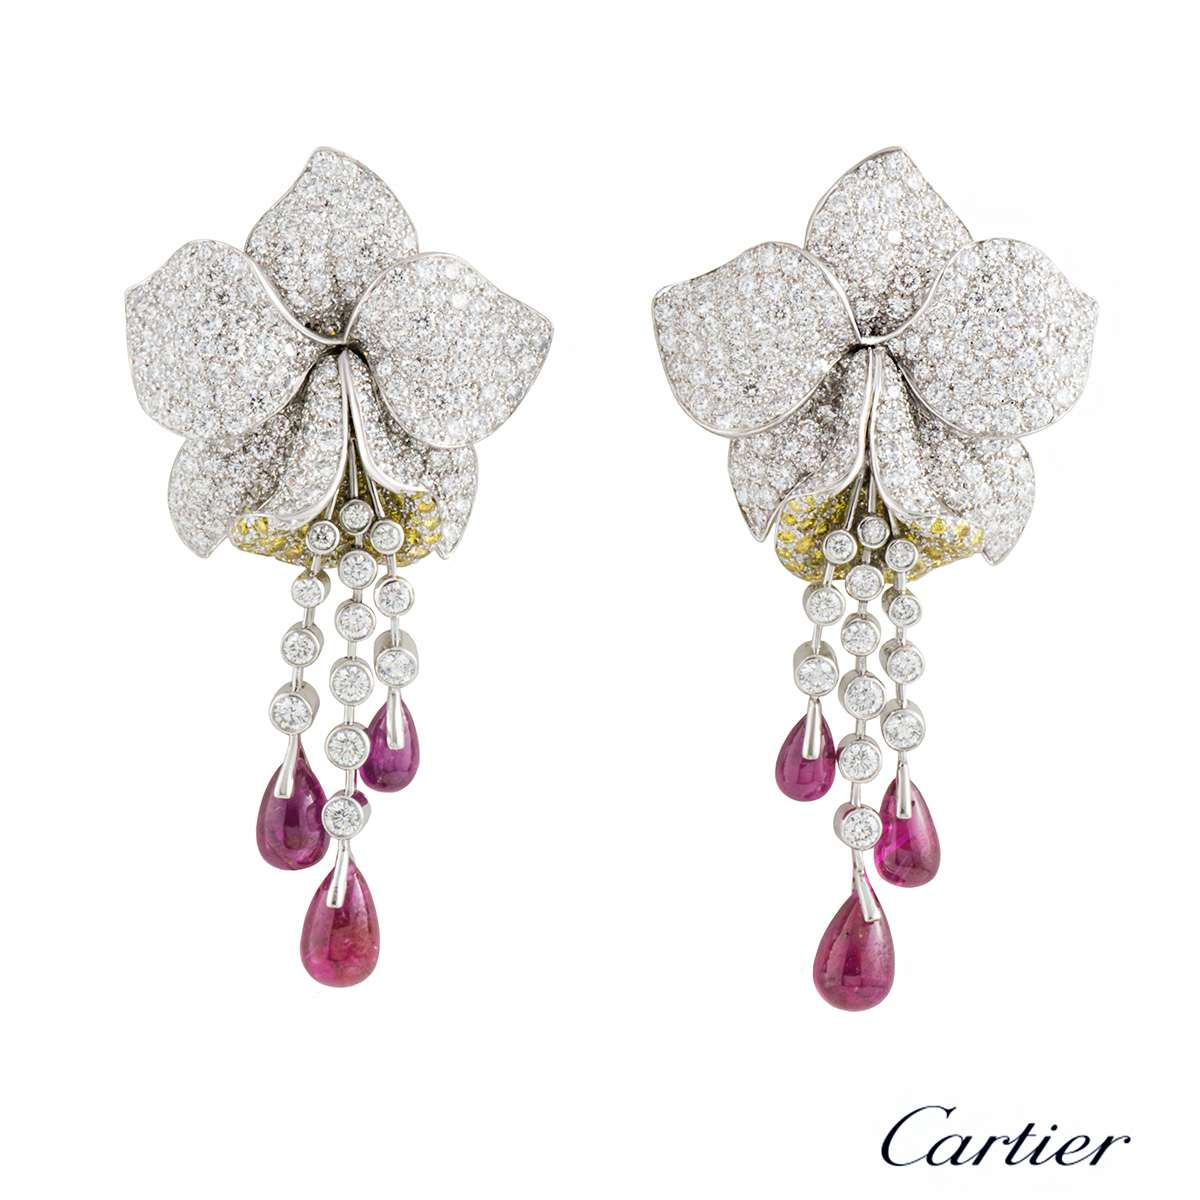 online vorra fashion cz earrings a buy platinum swarovski plated jewellery double product silver heart